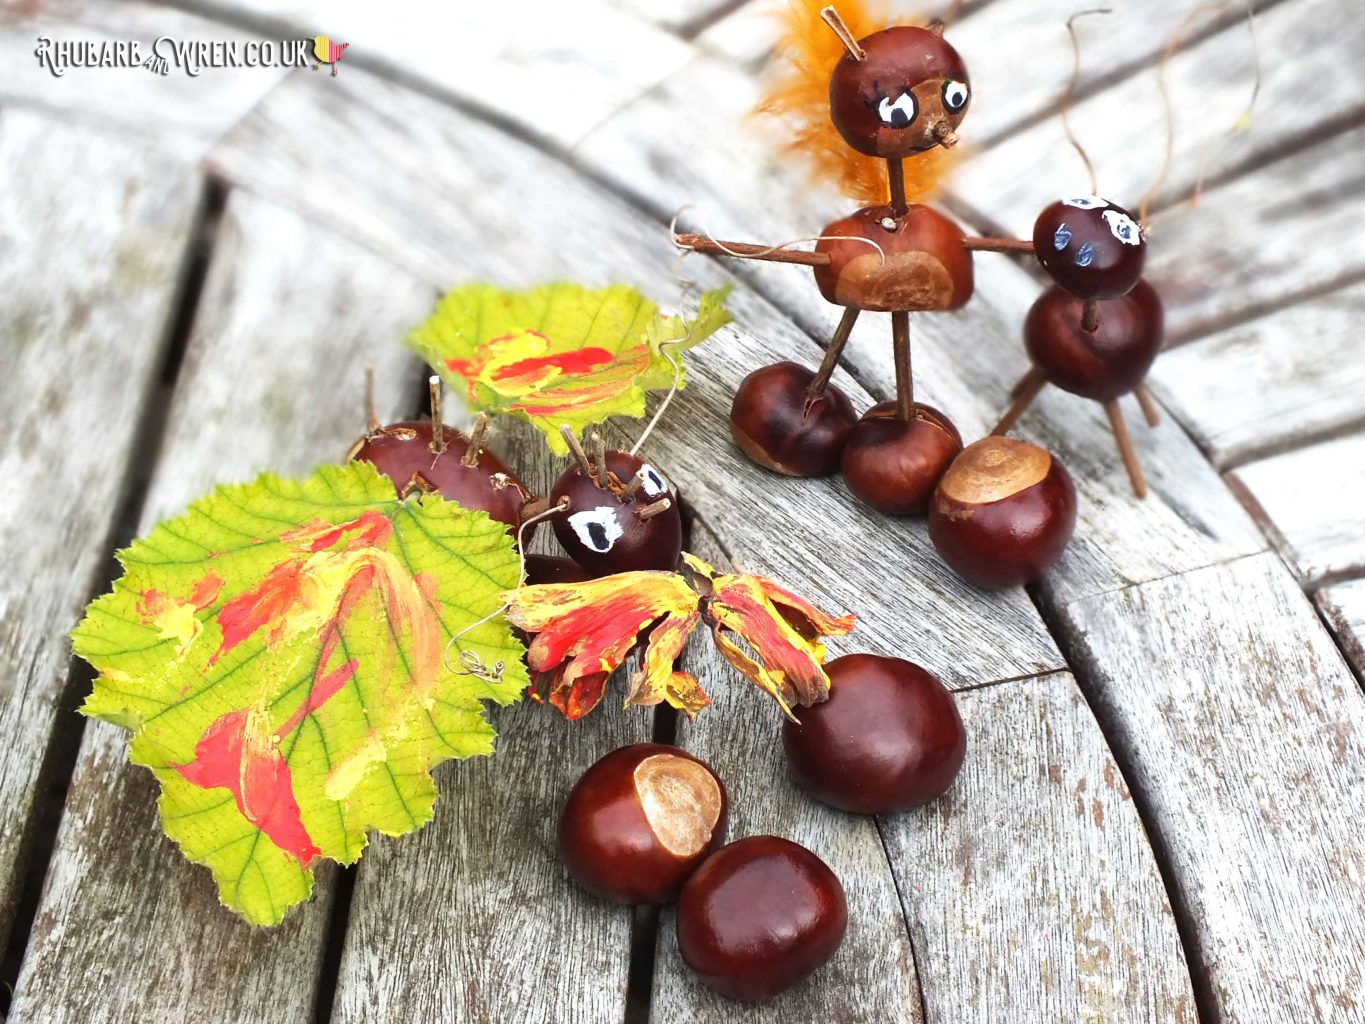 a dragon, squirrel and deer, made out of conkers